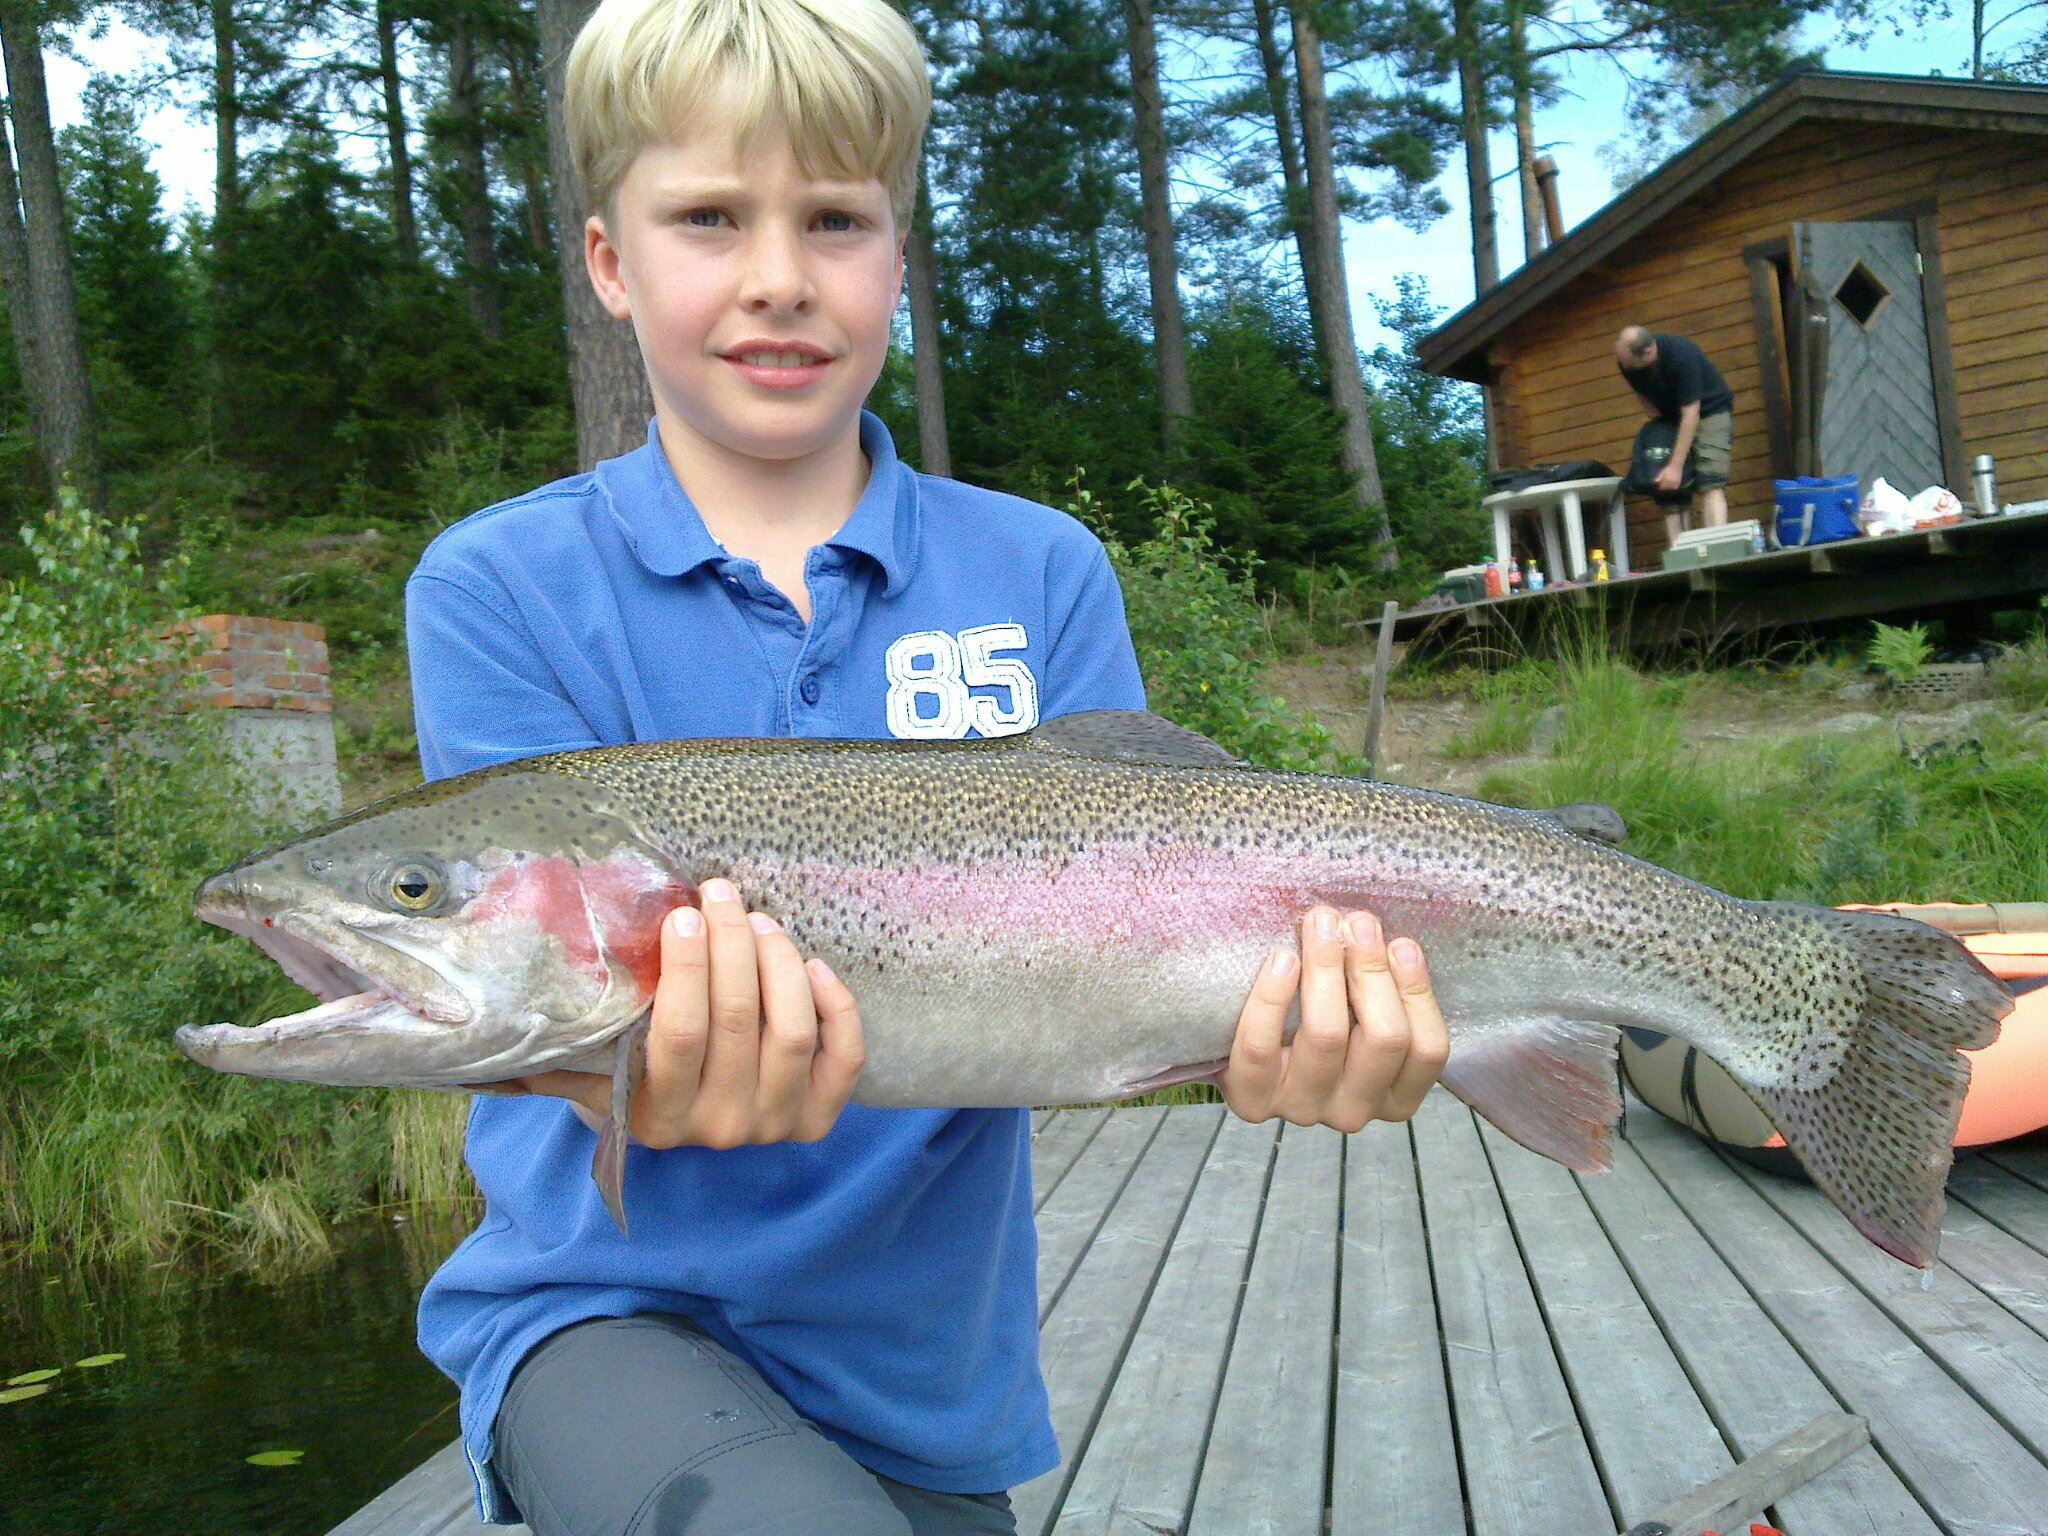 Fishing rainbow trouts in Bellyboats